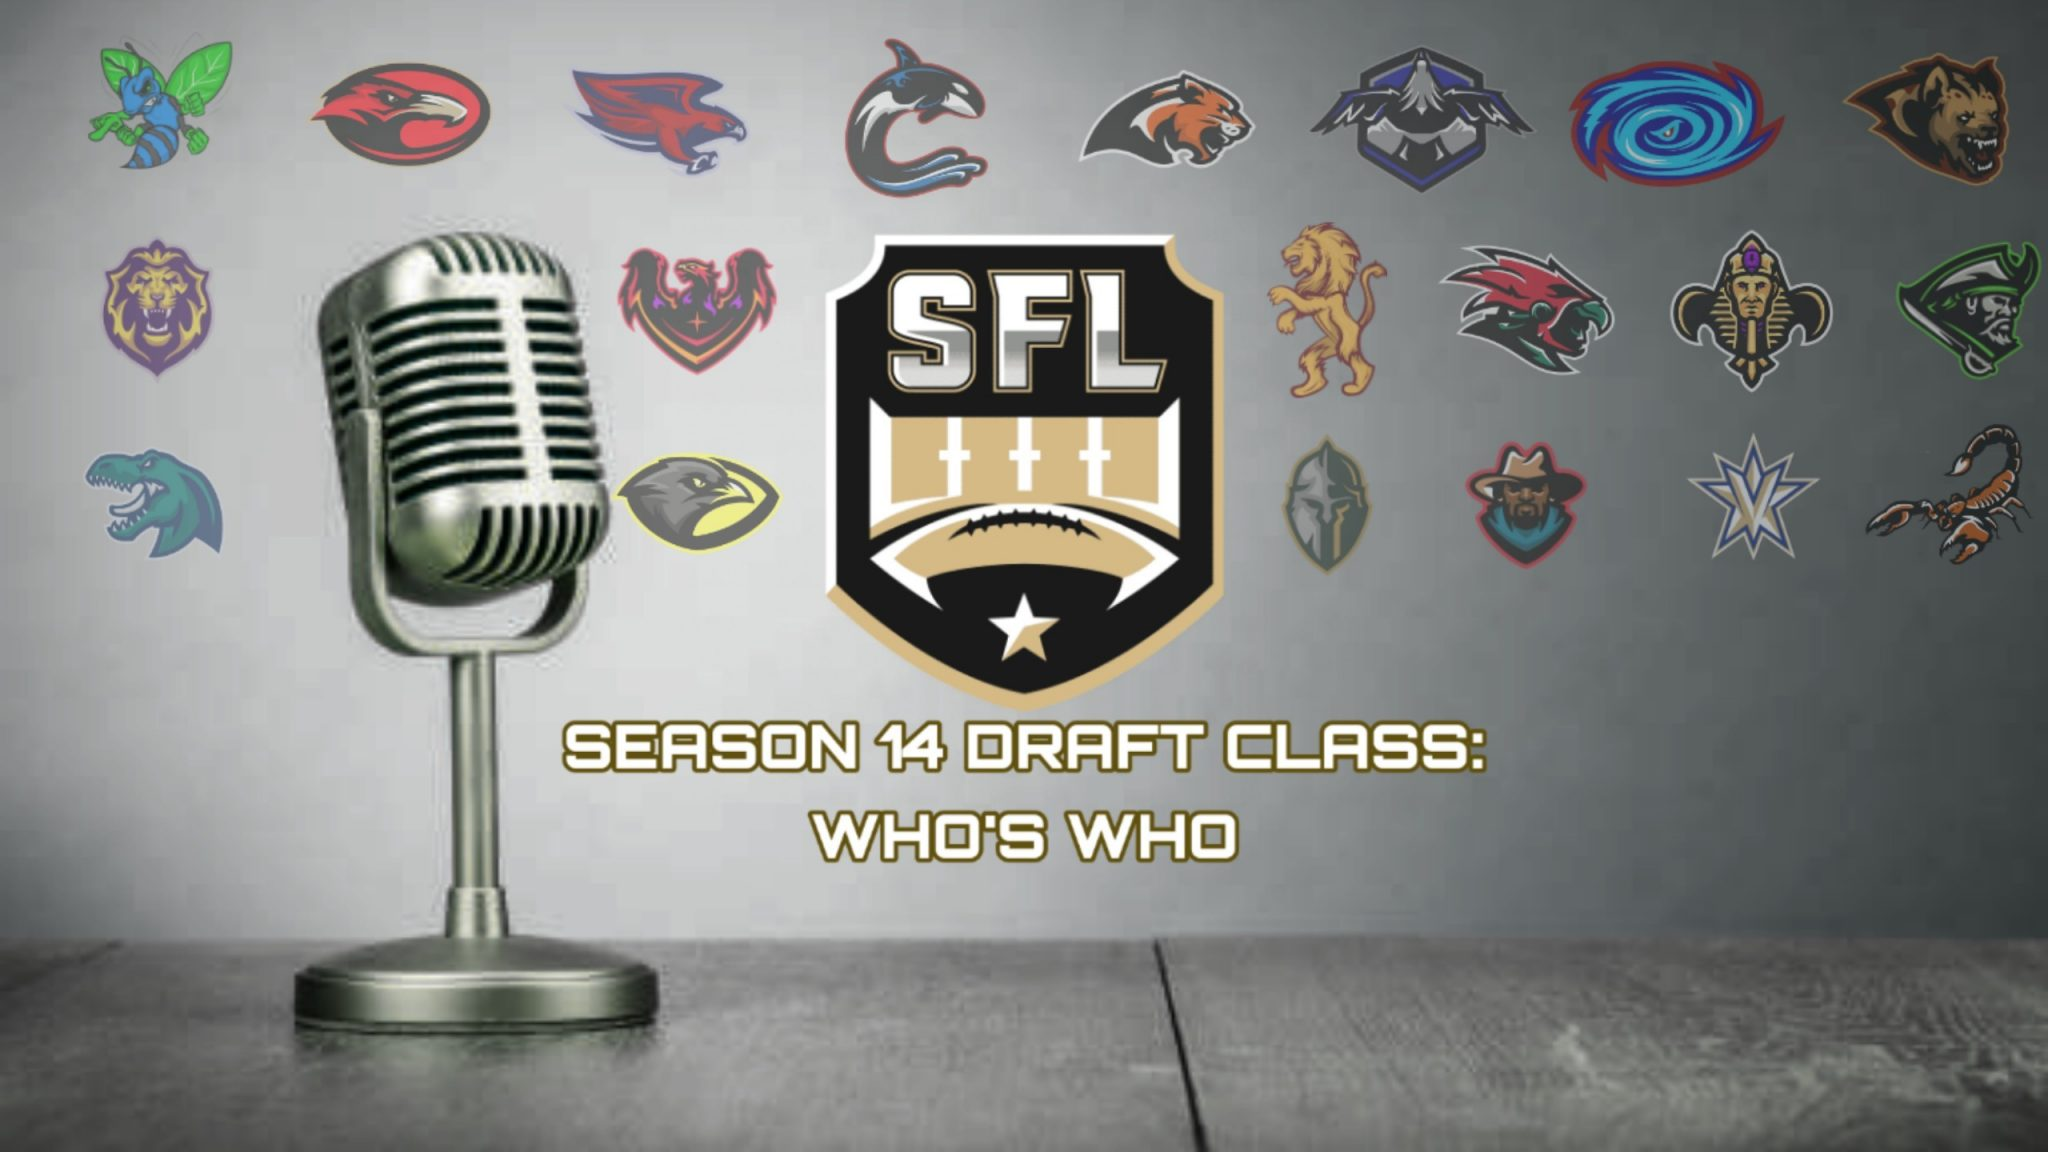 Meet the Season 14 Draft Class: Who's Who Part VI